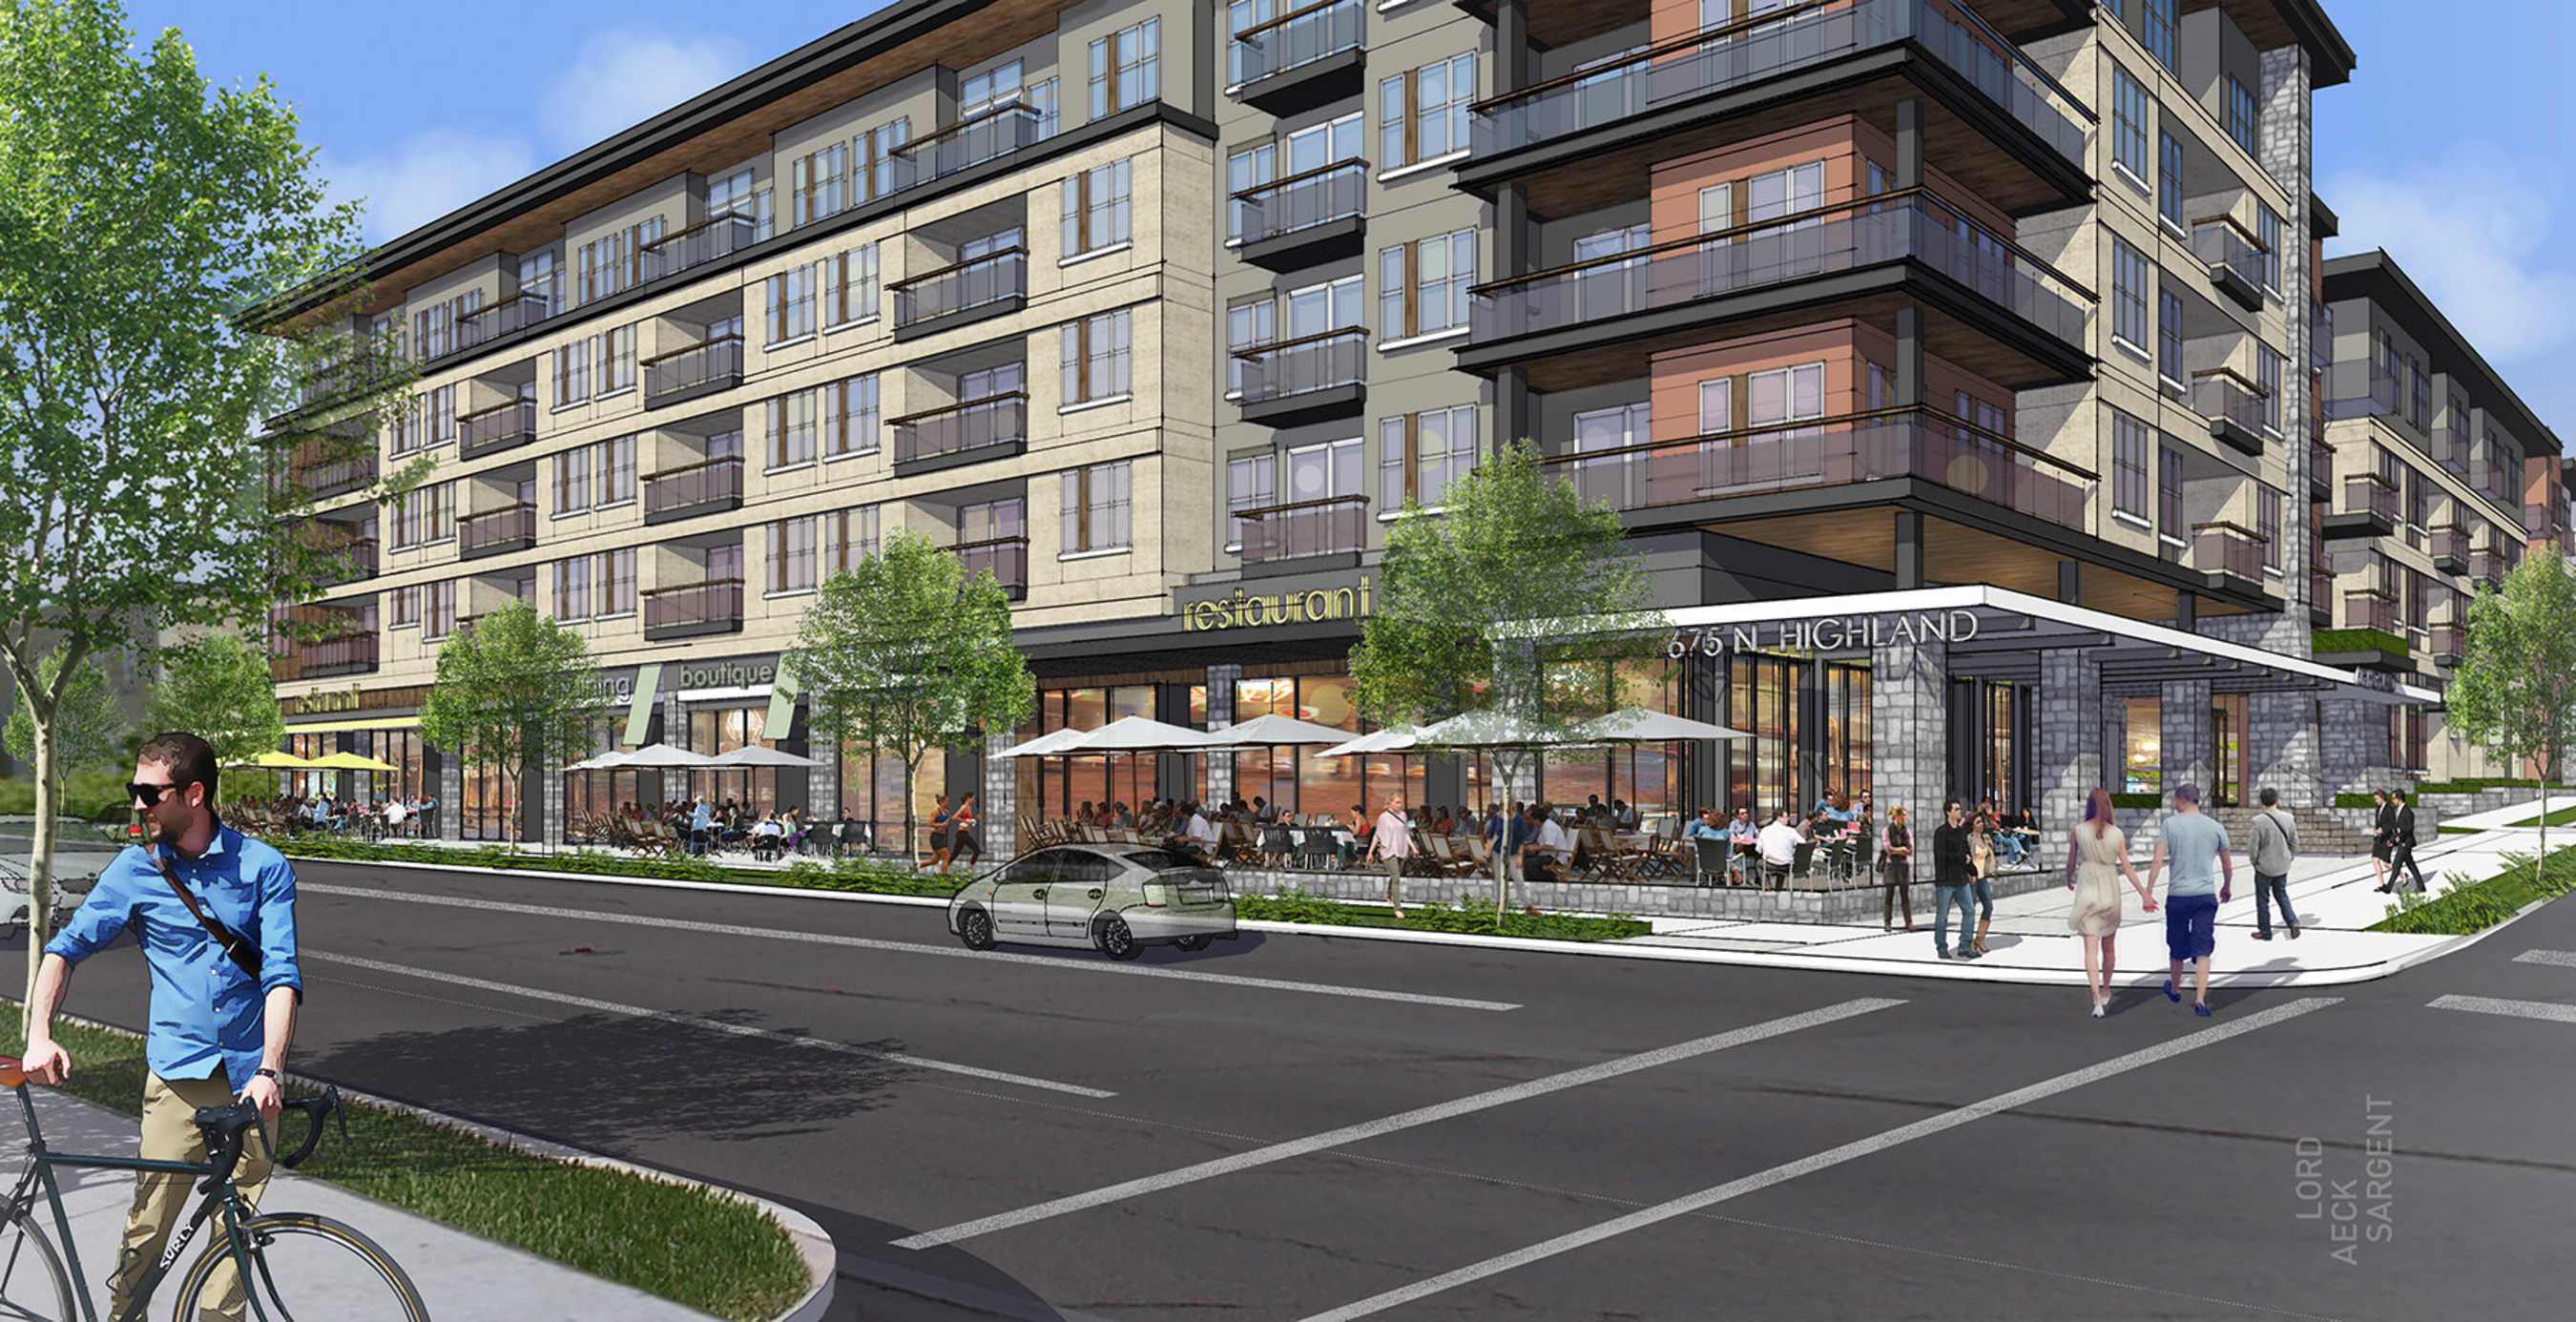 Gilbane Building Company Awarded Construction of 675 North Highland Mixed-Use project